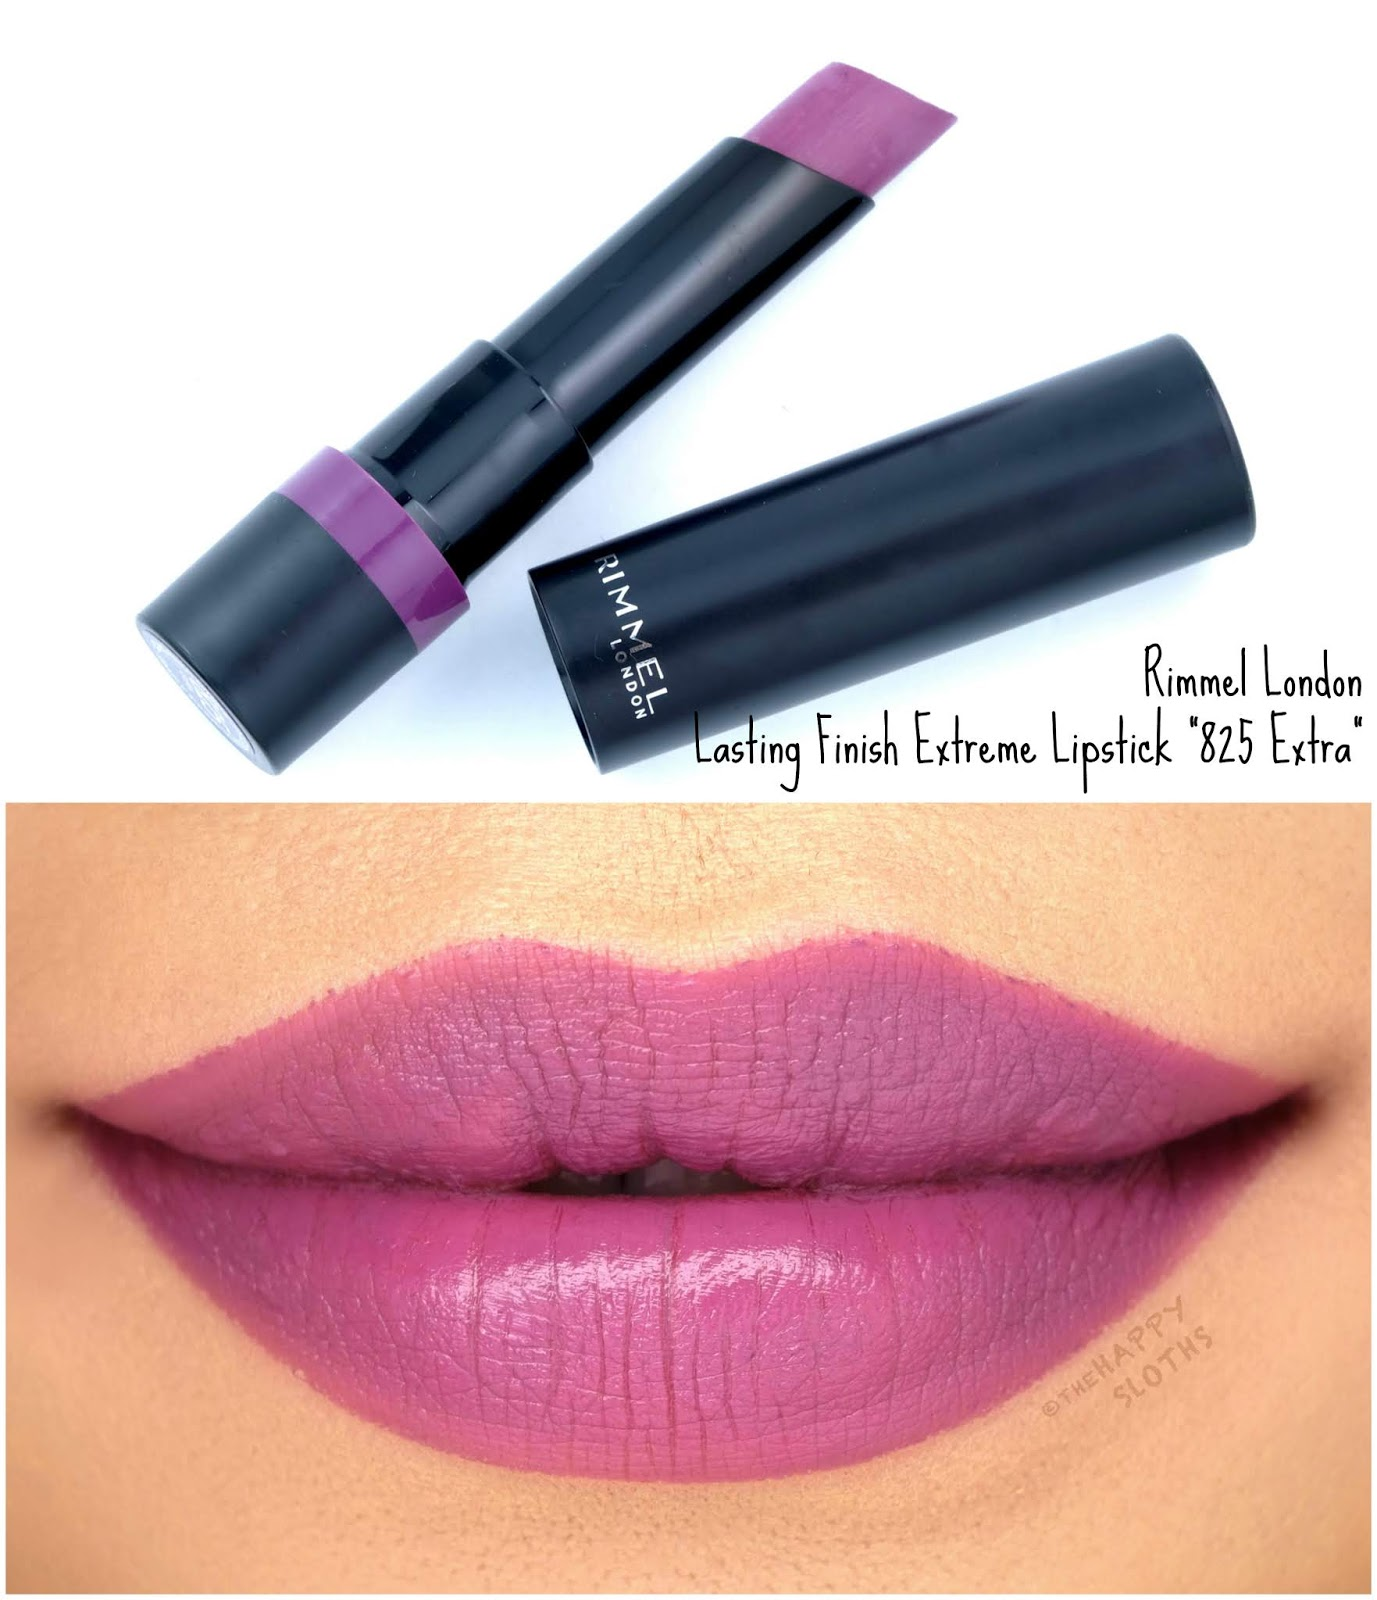 "Rimmel London | Lasting Finish Extreme Lipstick in ""825 Extra"": Review and Swatches"